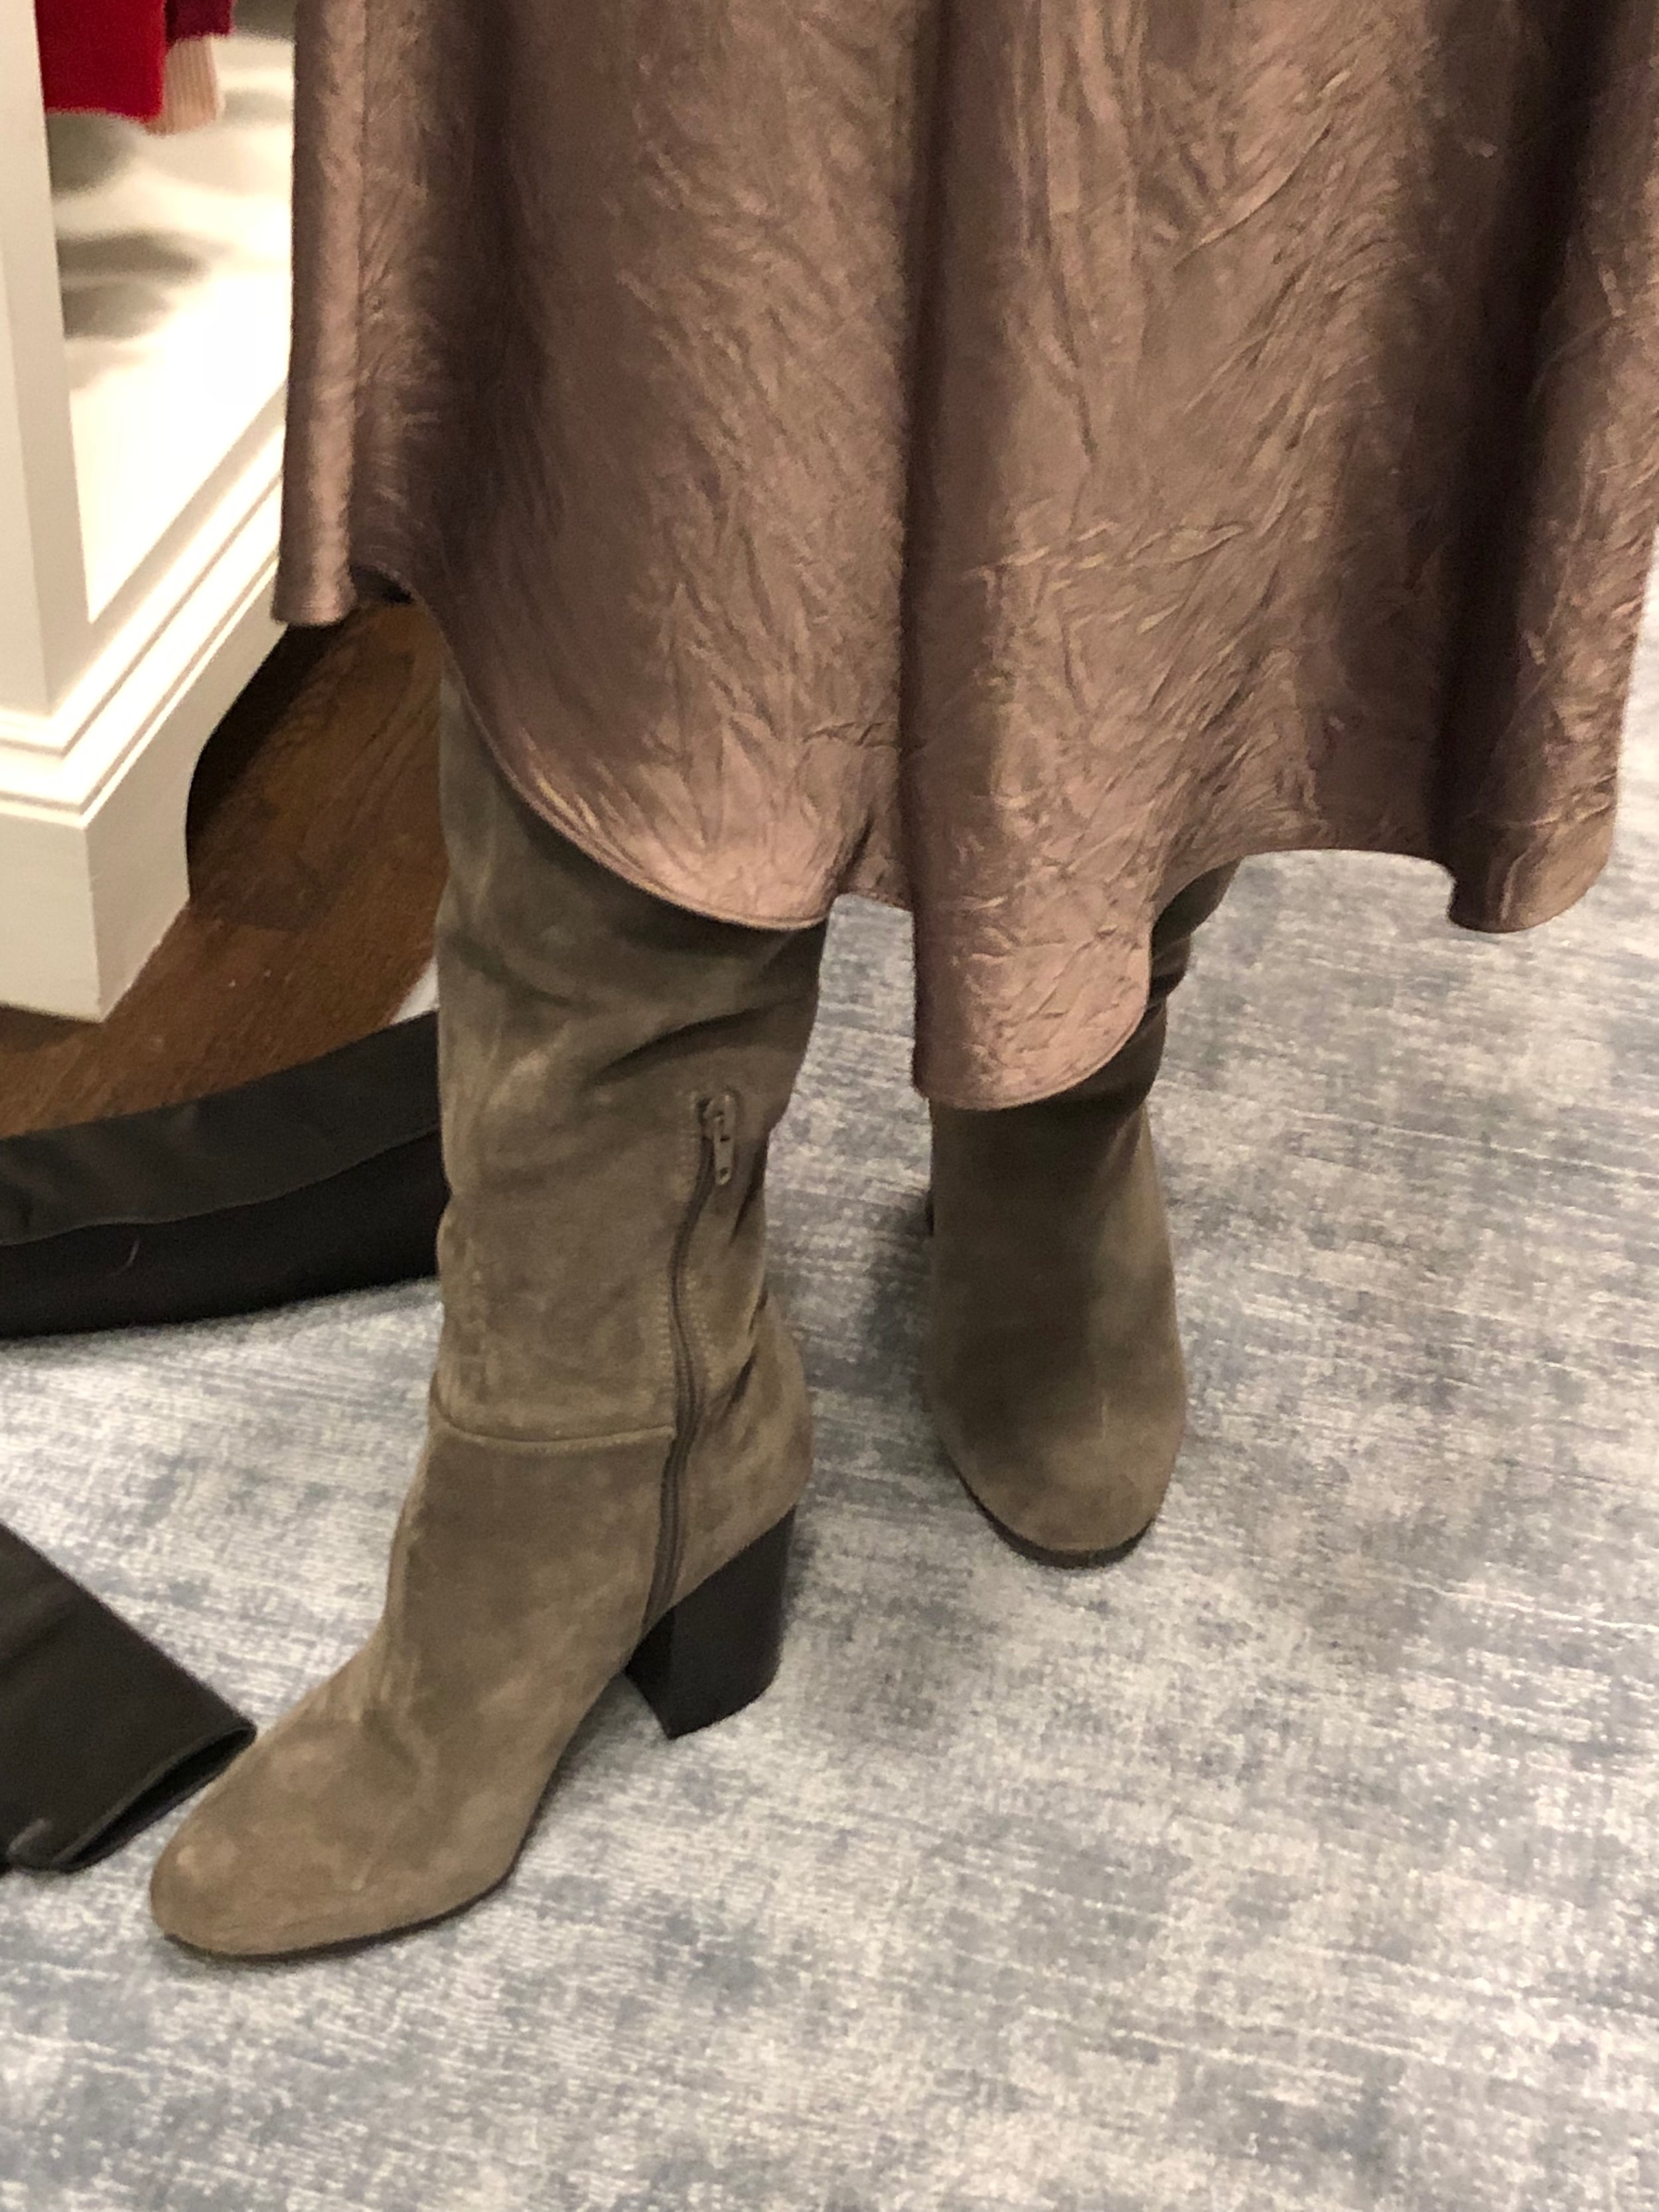 The skirt hangs over the boot